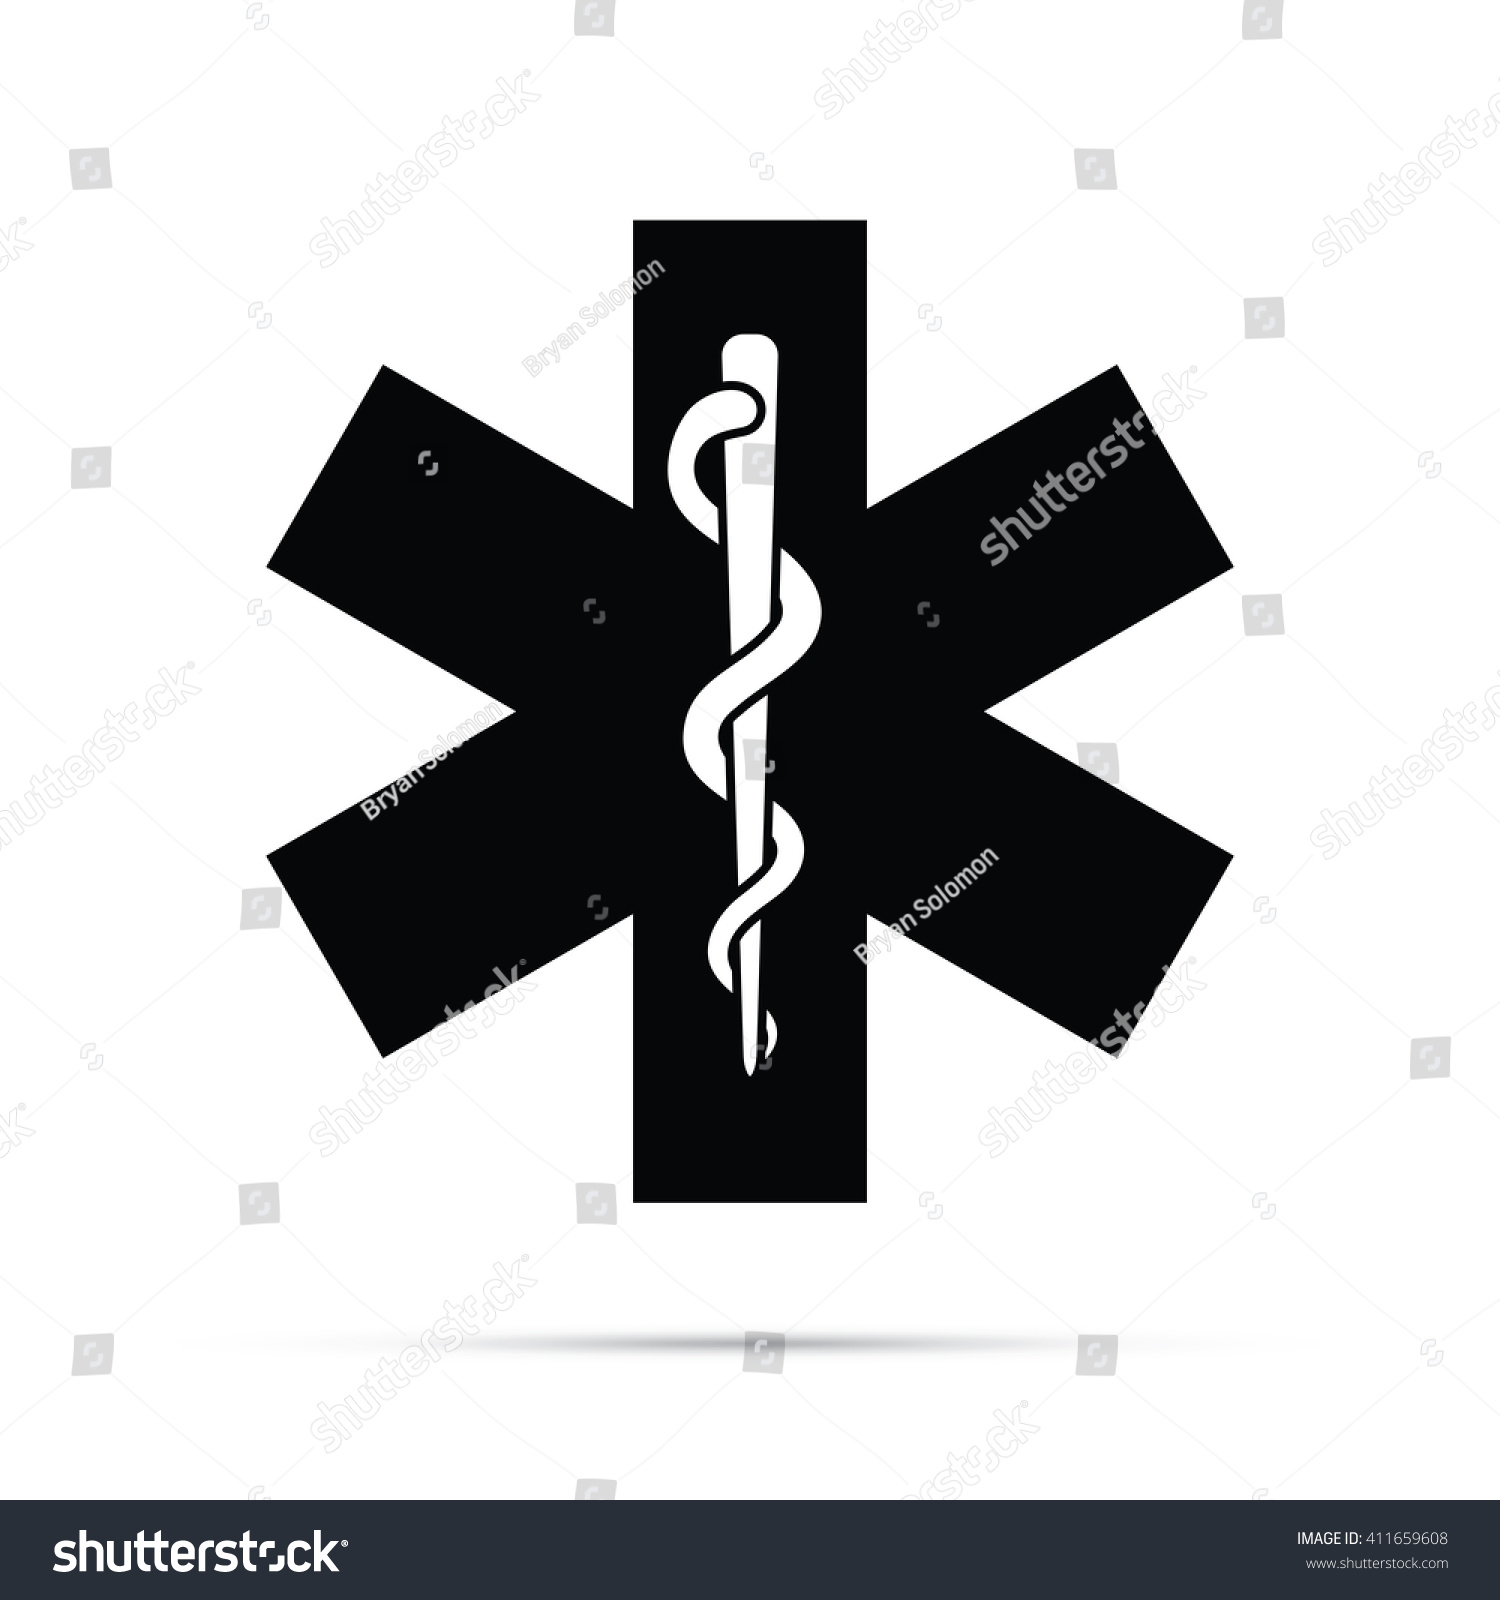 Rod asclepius snake staff medical symbol stock vector 411659608 rod of asclepius snake staff medical symbol icon buycottarizona Image collections